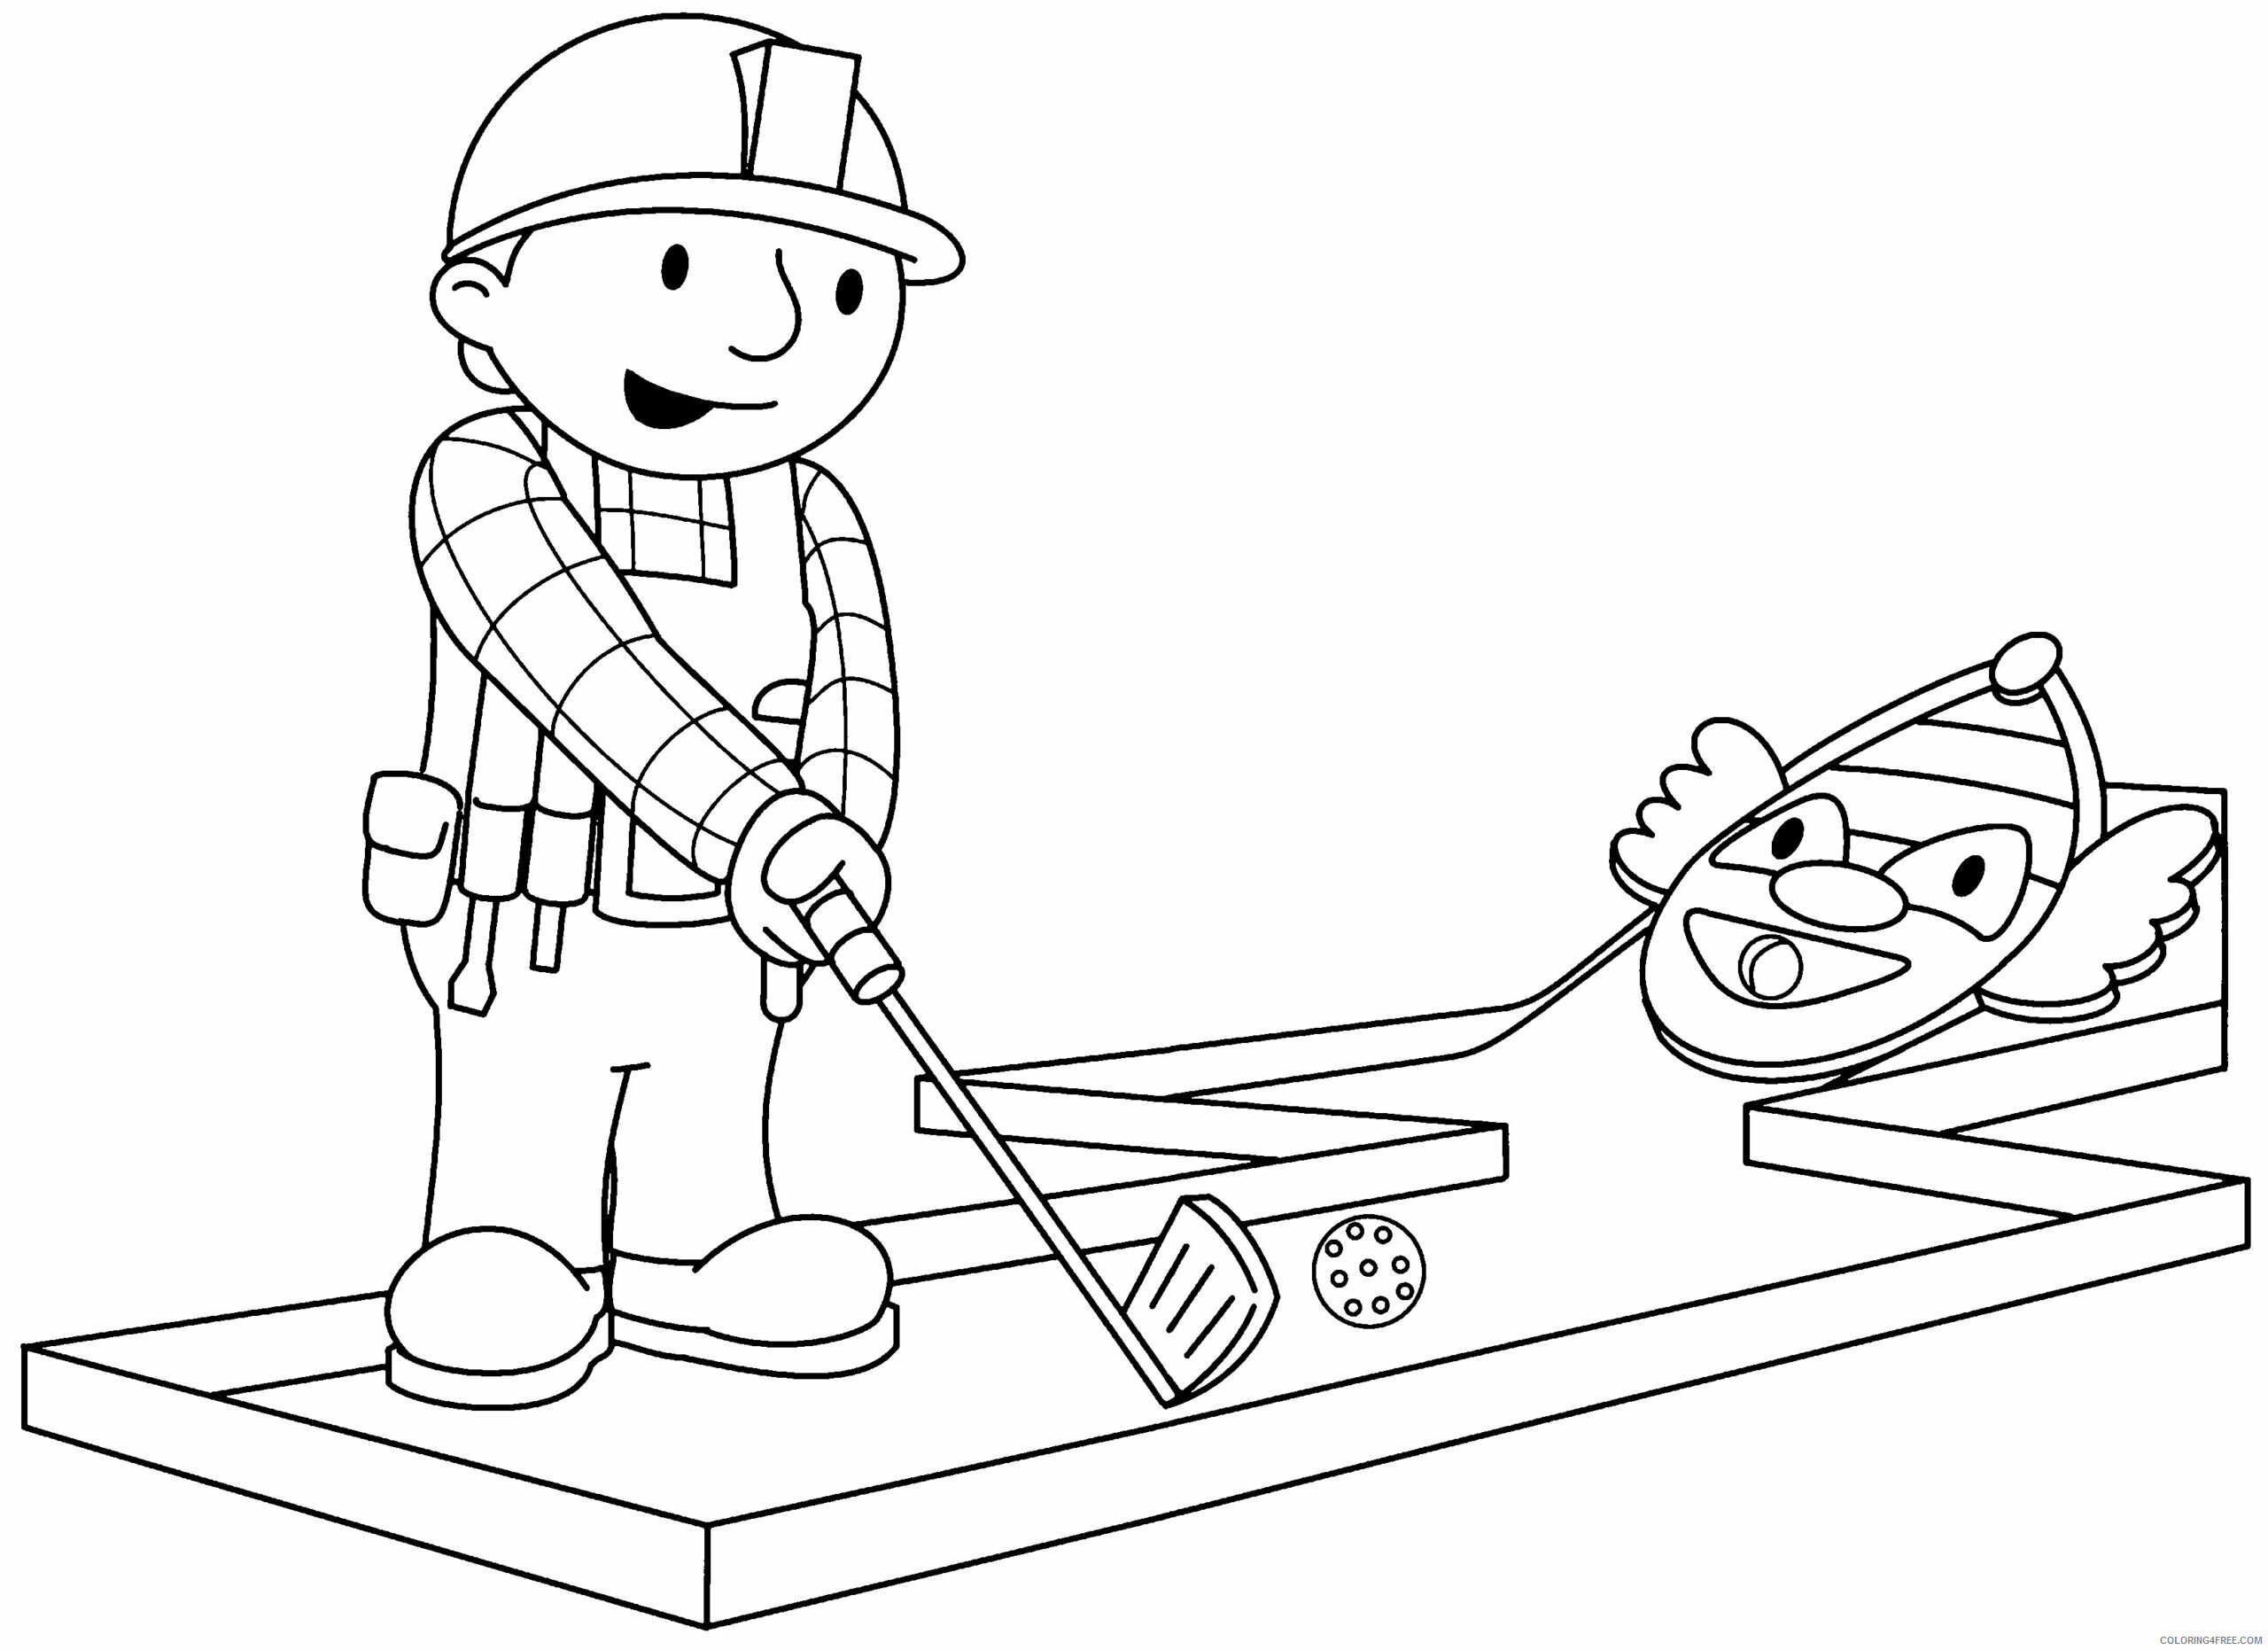 Bob the Builder Coloring Pages TV Film bob the builder 72 Printable 2020 01094 Coloring4free